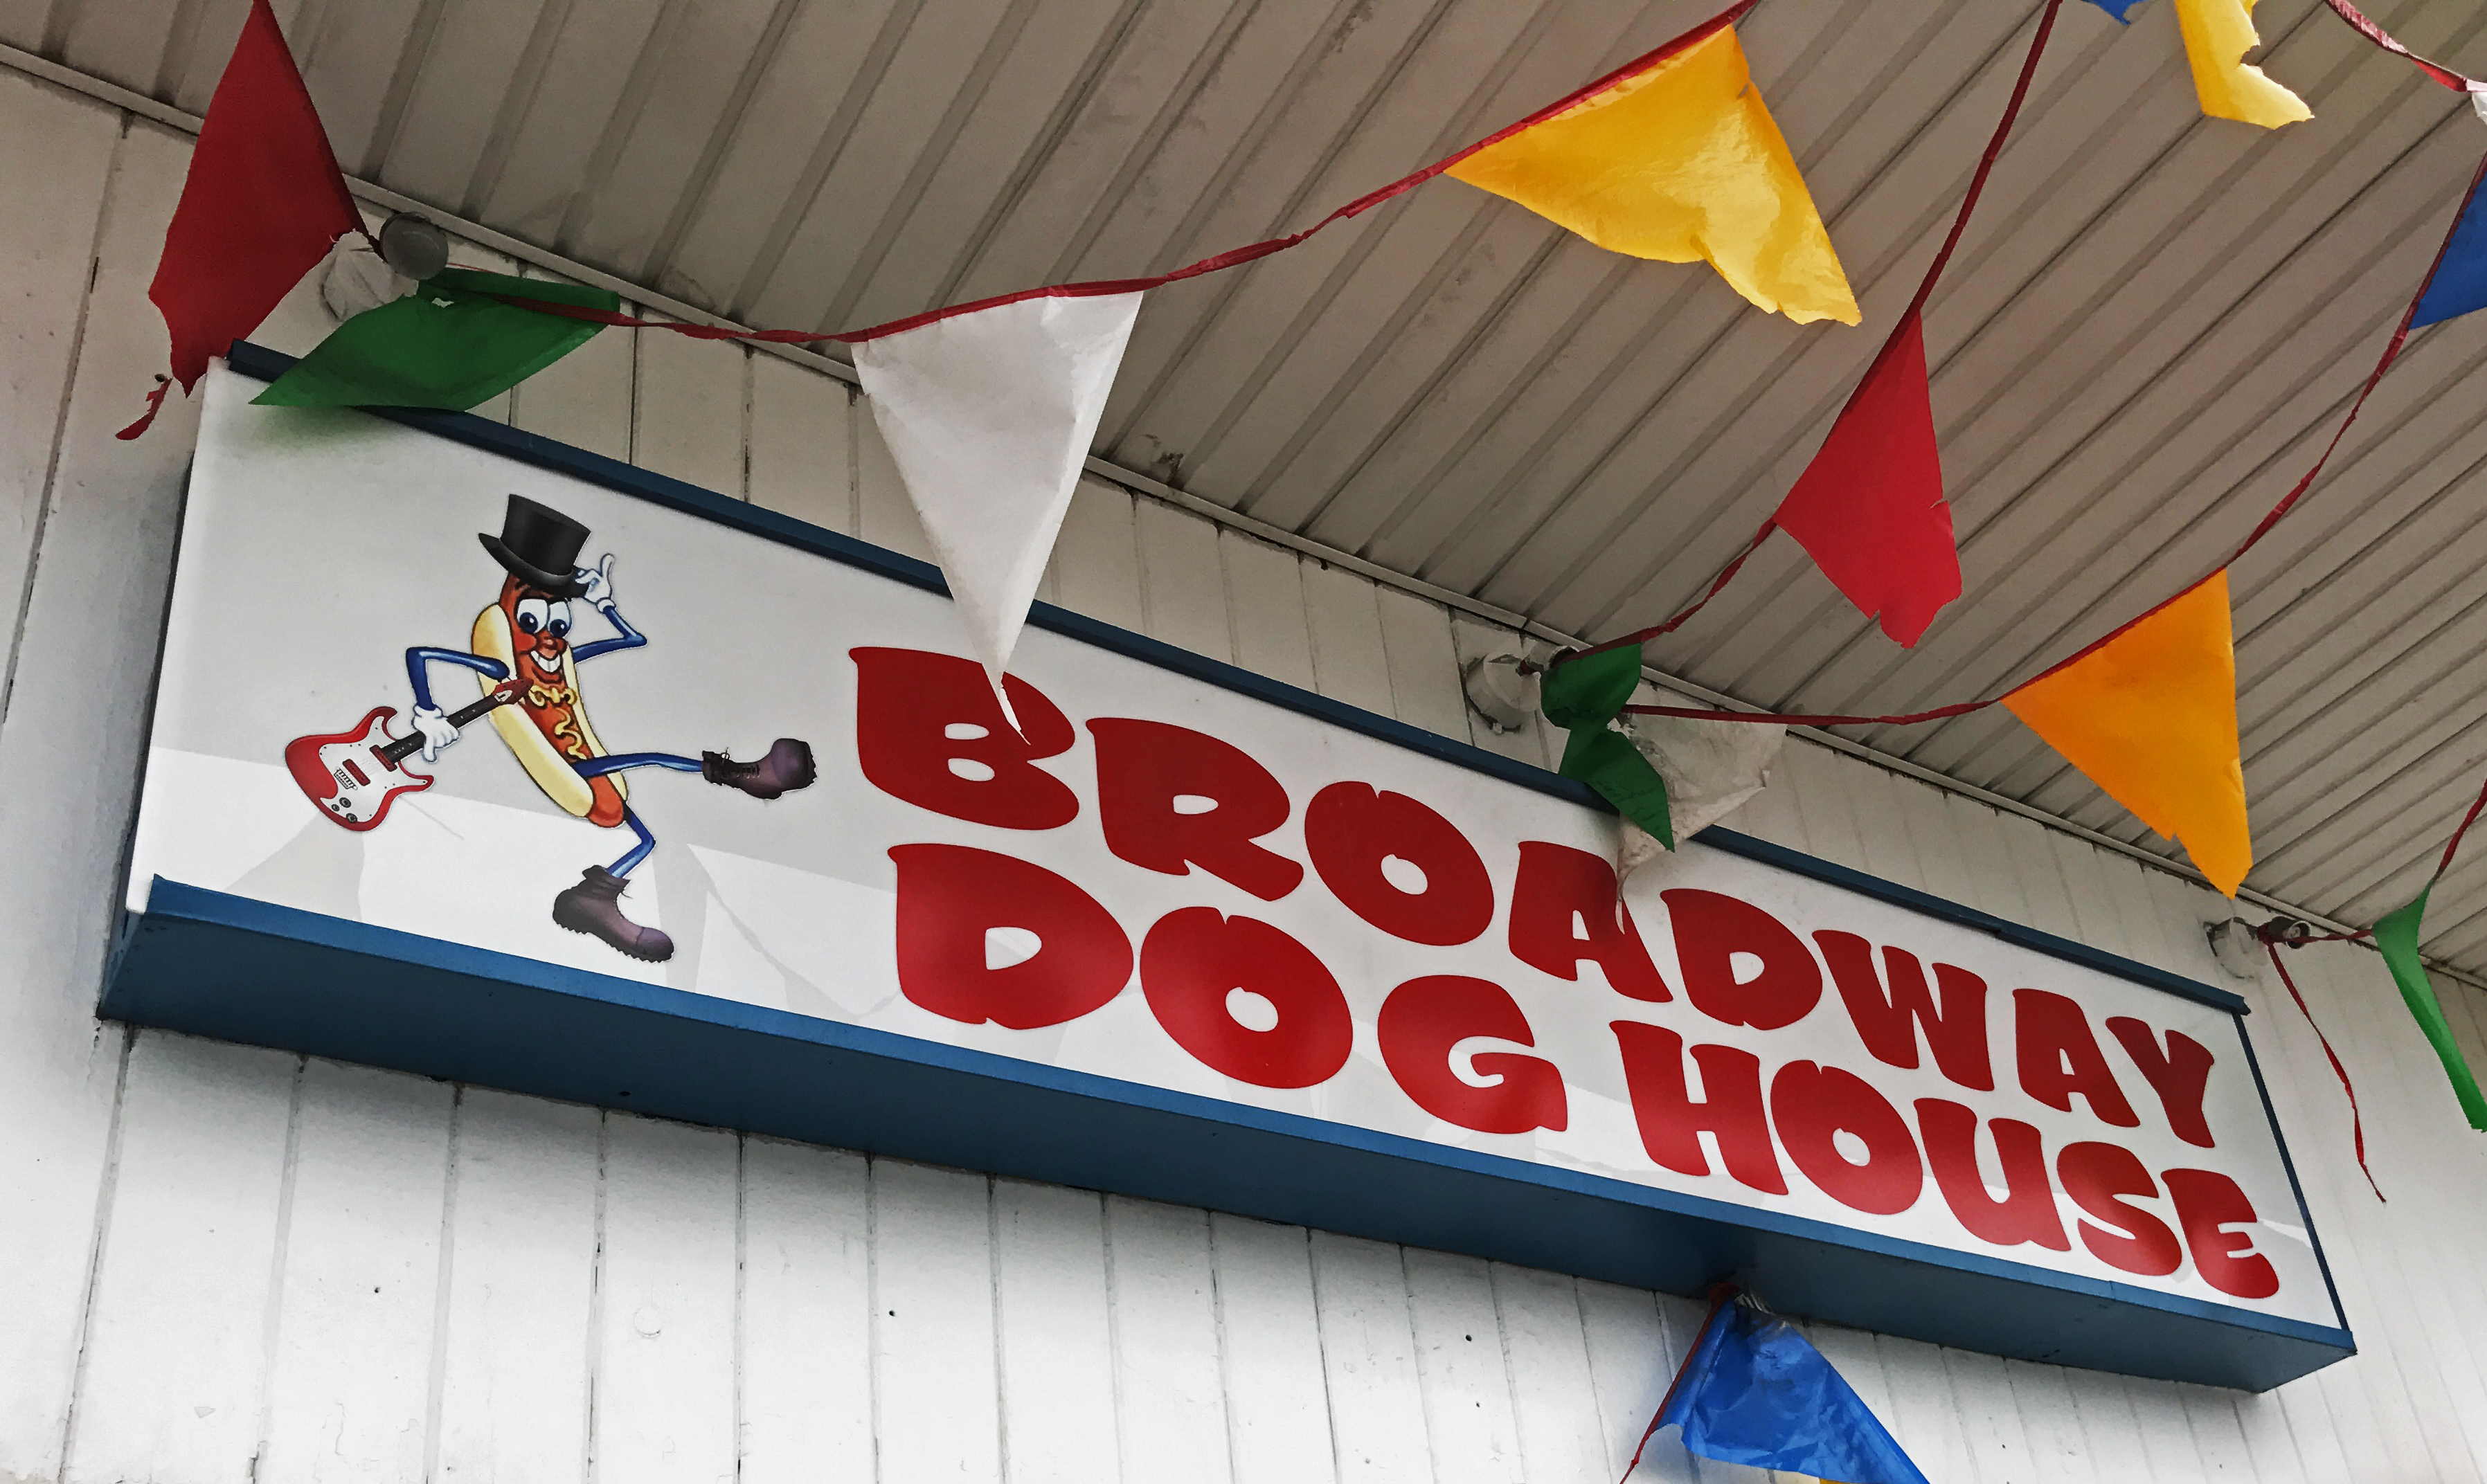 Broadway dog house frontsign the blue collar foodie for Broadway house